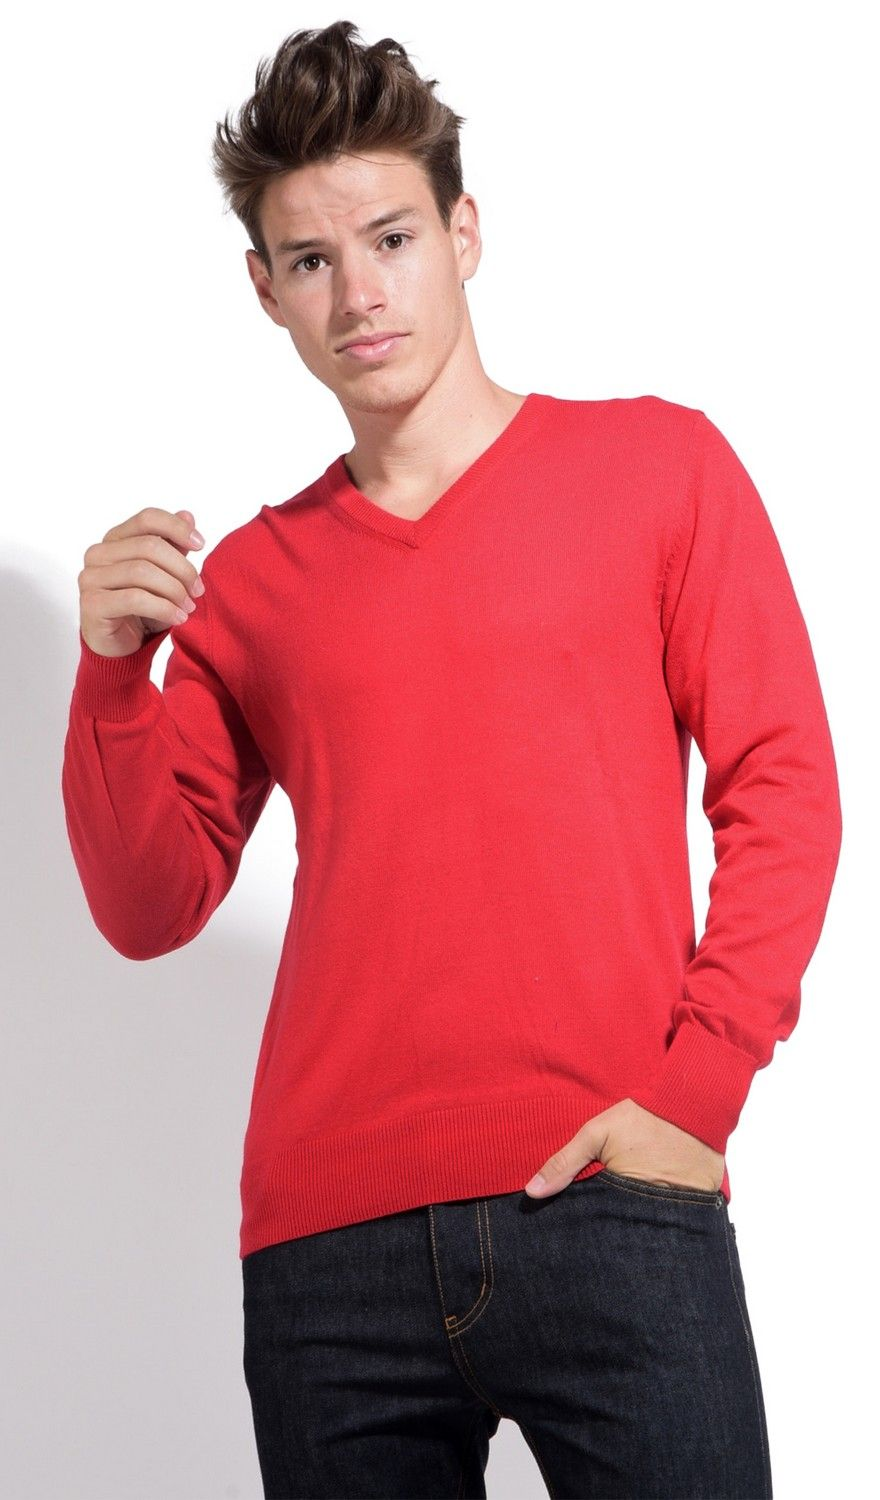 William De Faye V-neck Sweater with Contrasting Inner Collar in Red